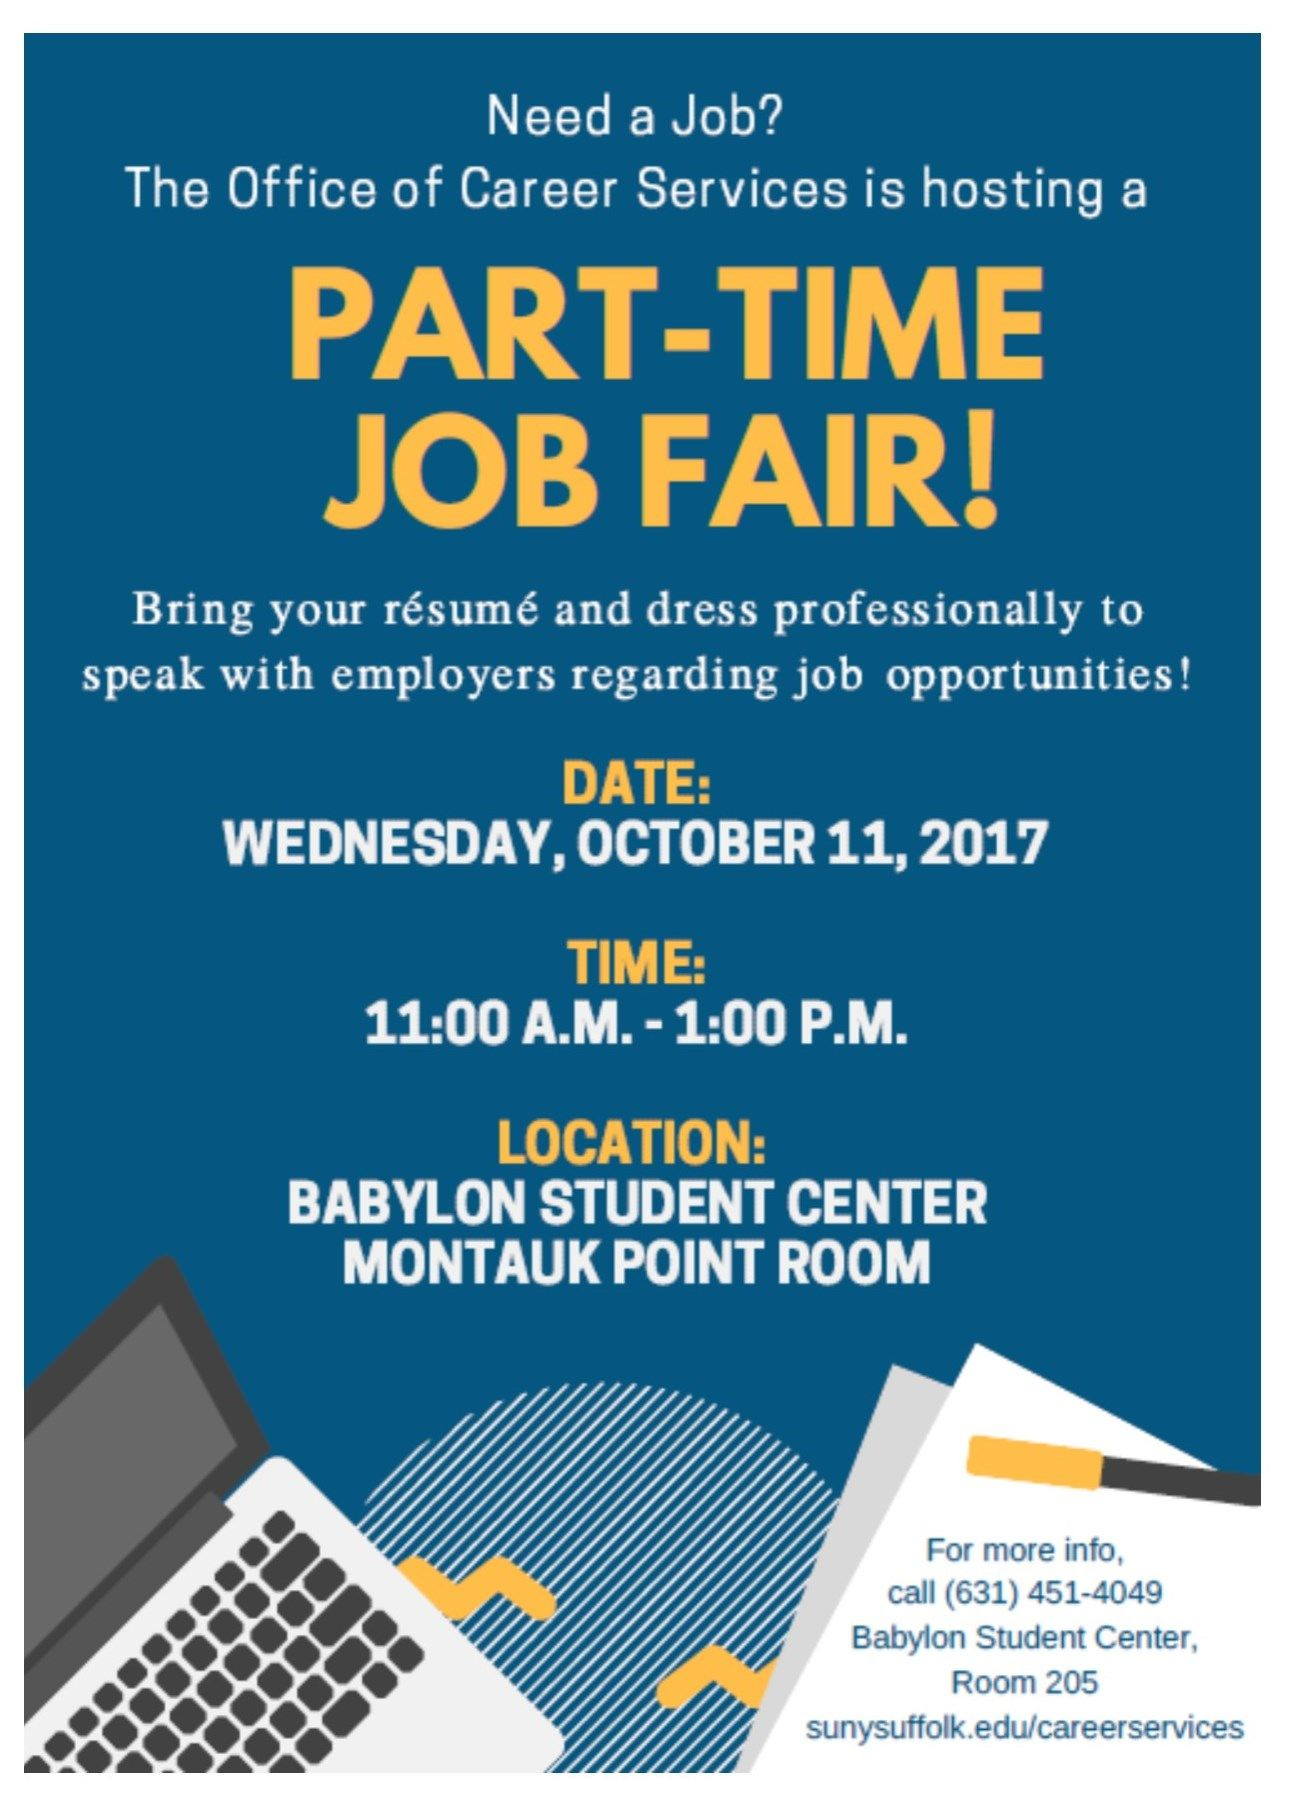 10/11/17 PartTime Job Fair hosted by Suffolk County